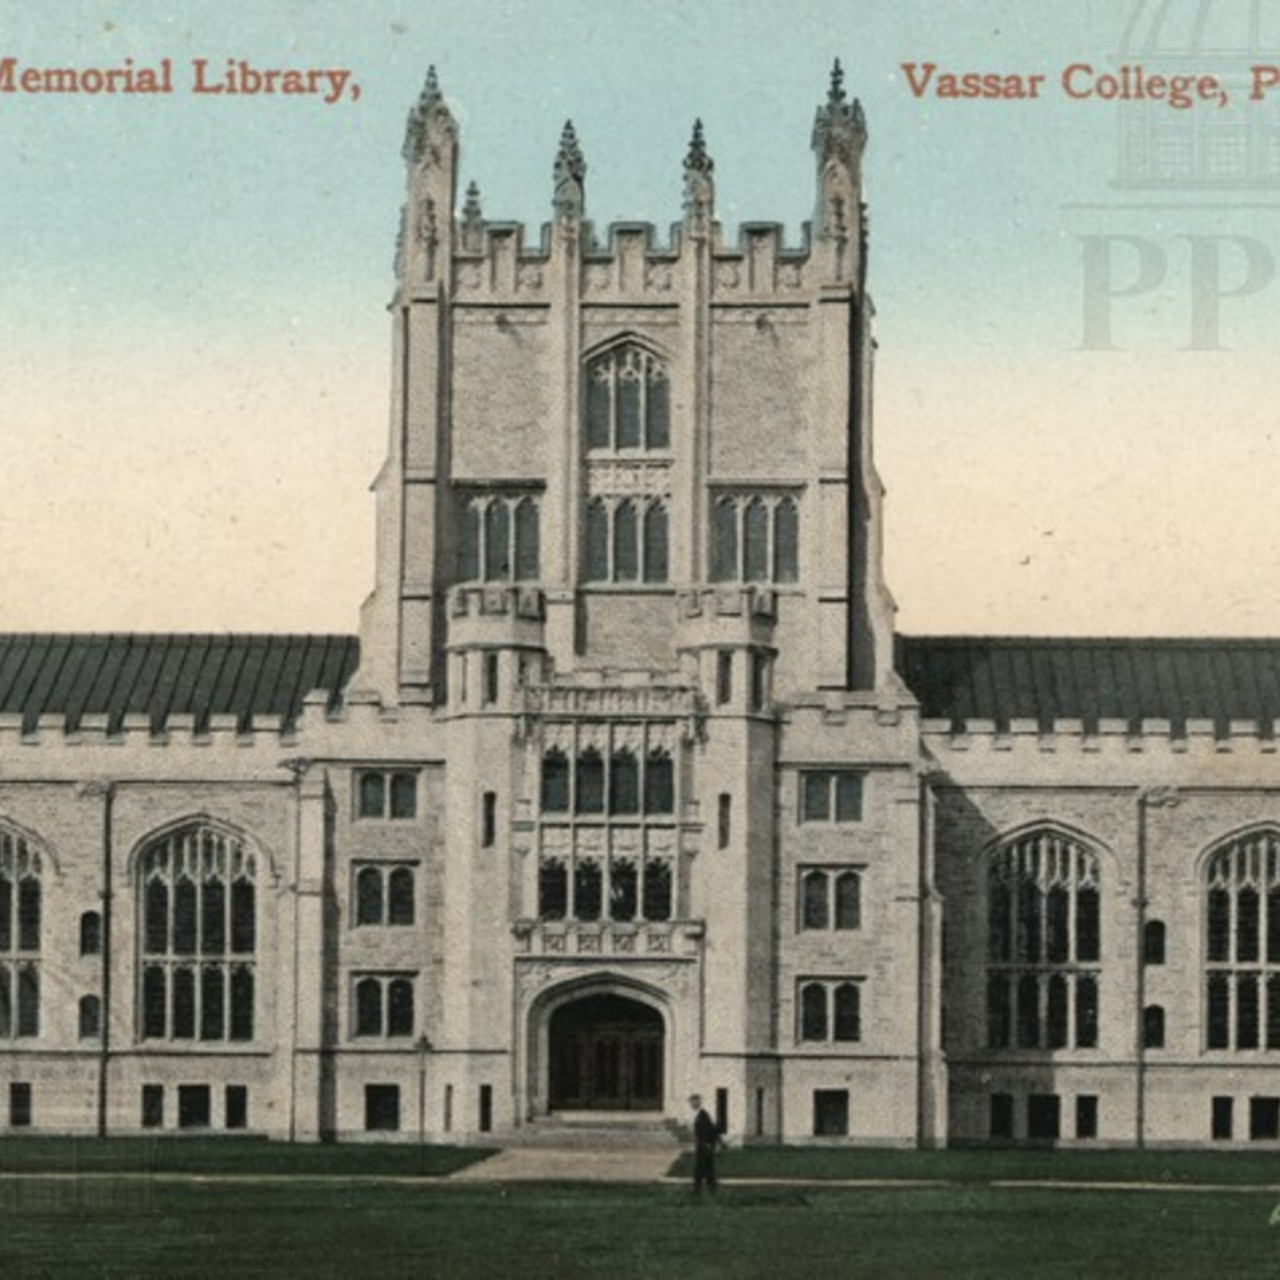 Thompson Memorial Library, Vassar College